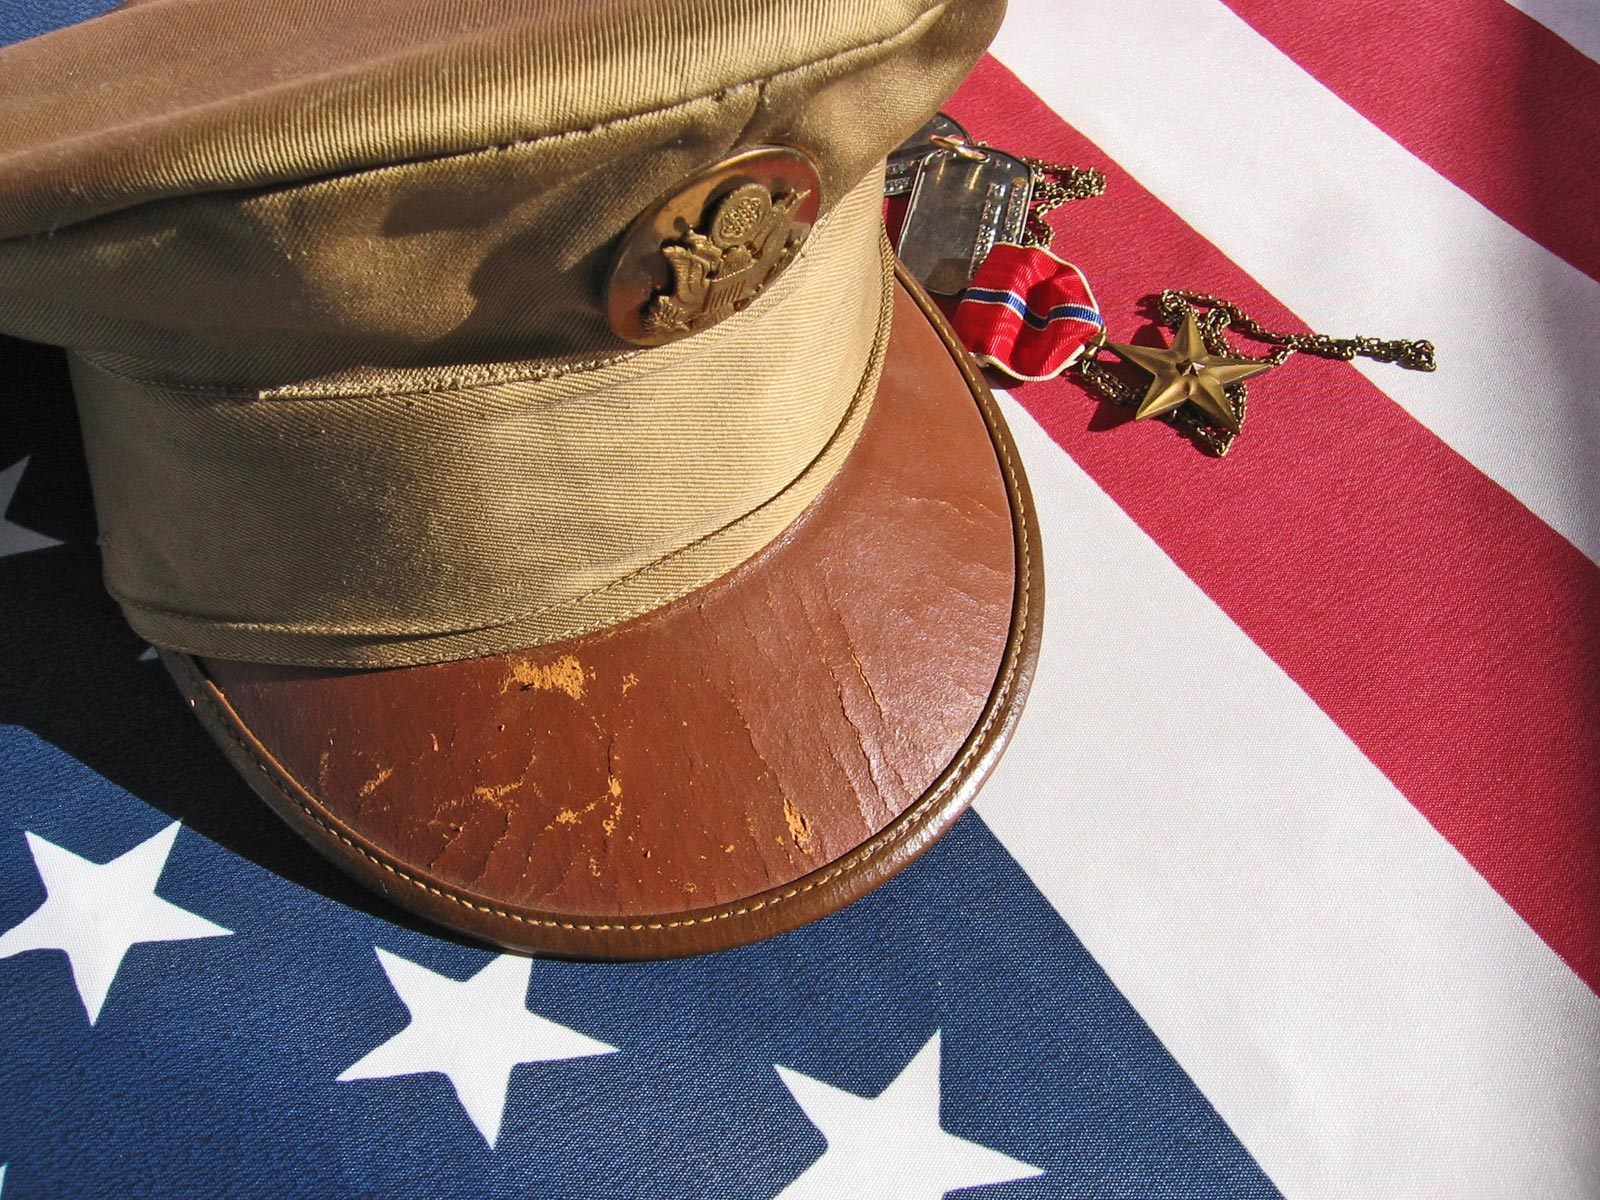 free memorial day powerpoint templates download powerpoint tips